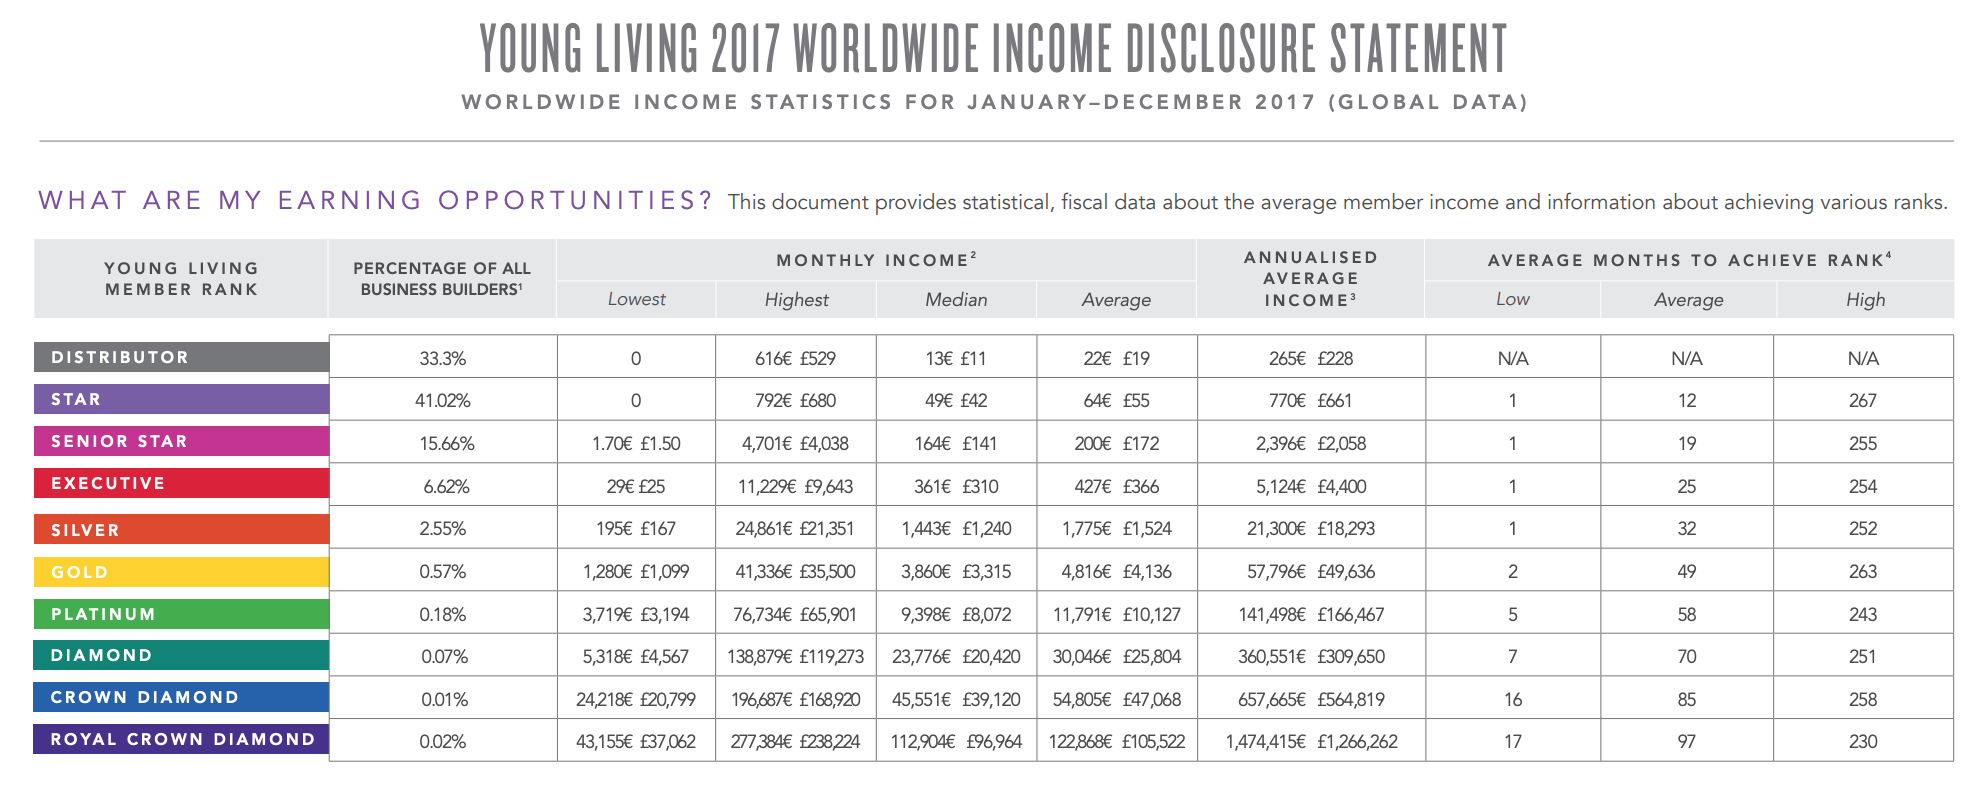 income disclosure 2017.png